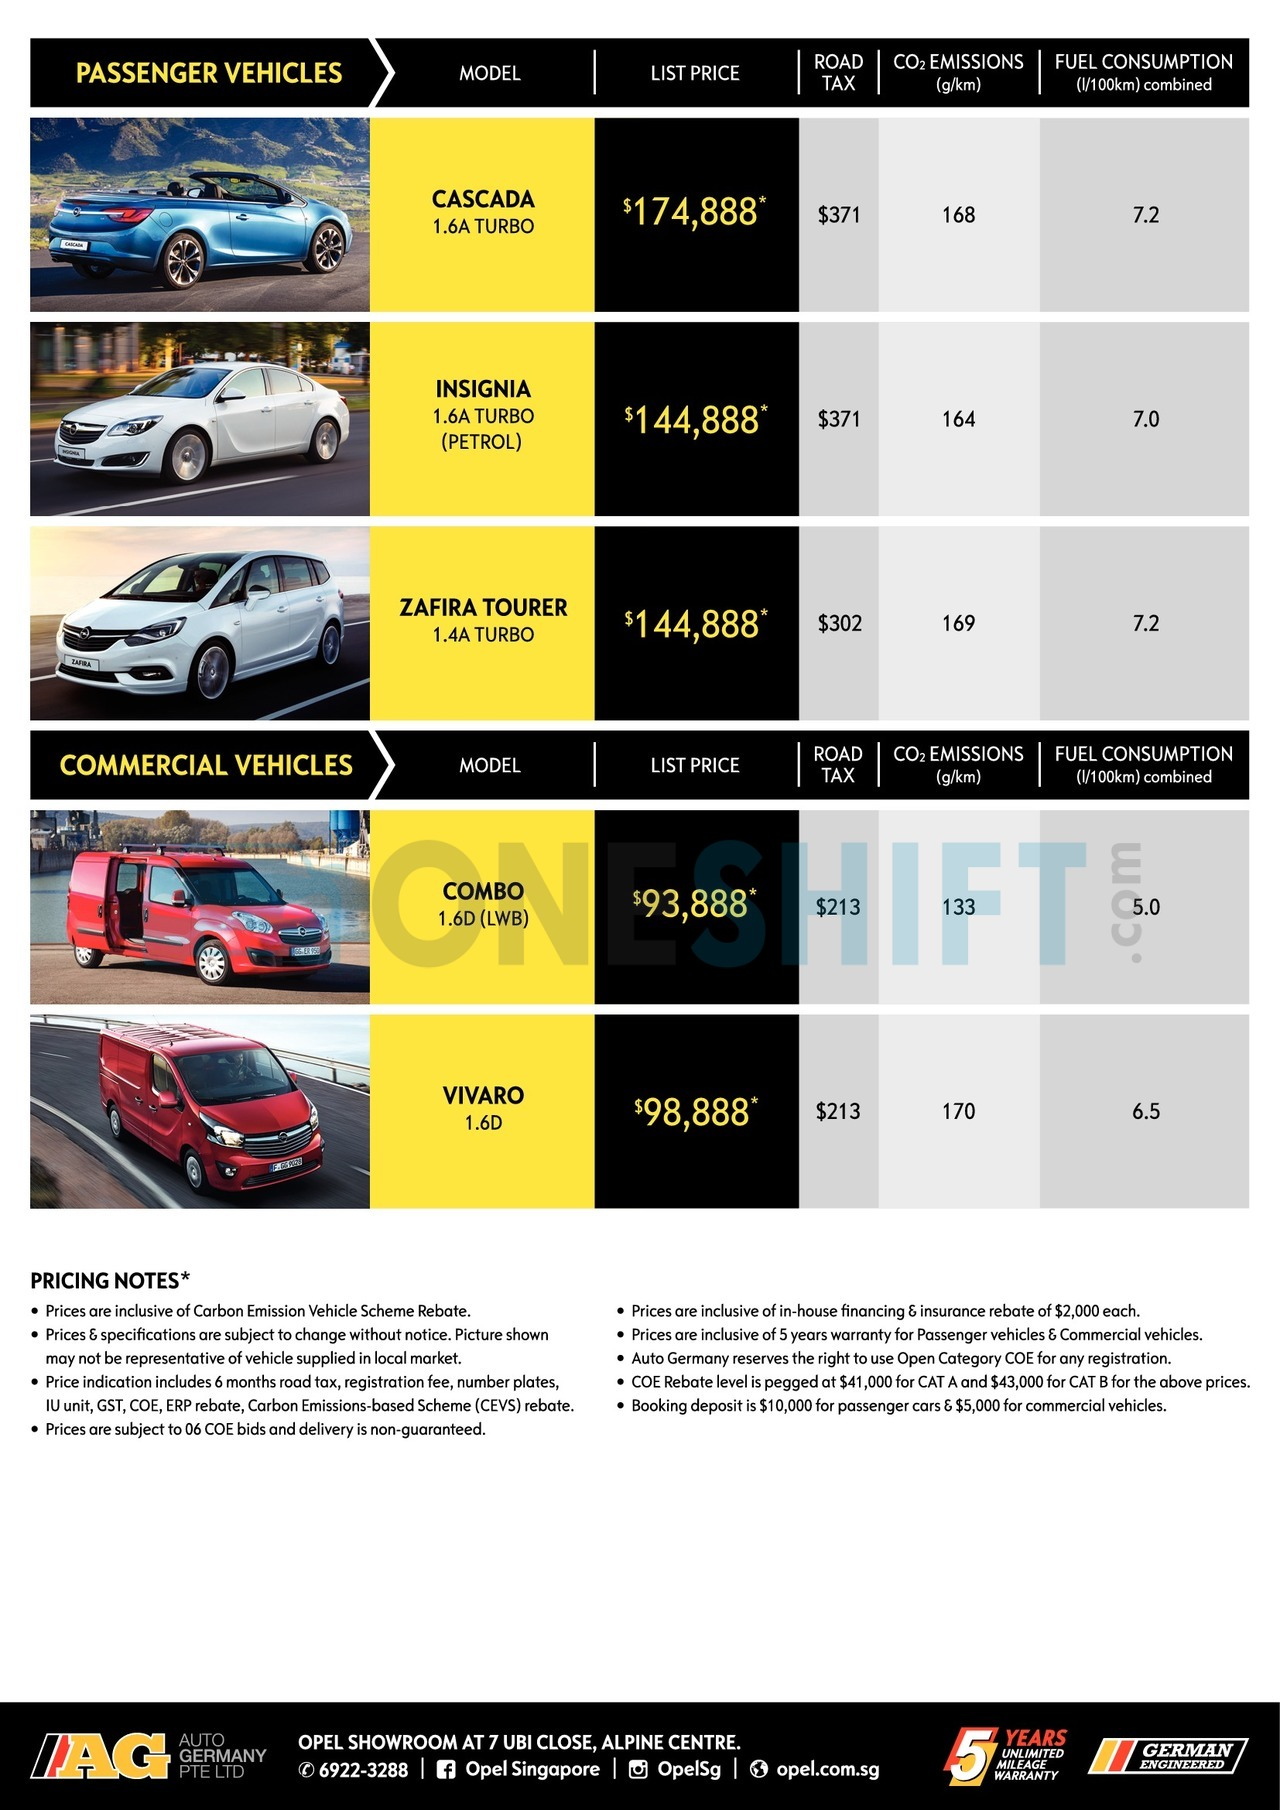 opel Price List 4-12-2017 Page 2